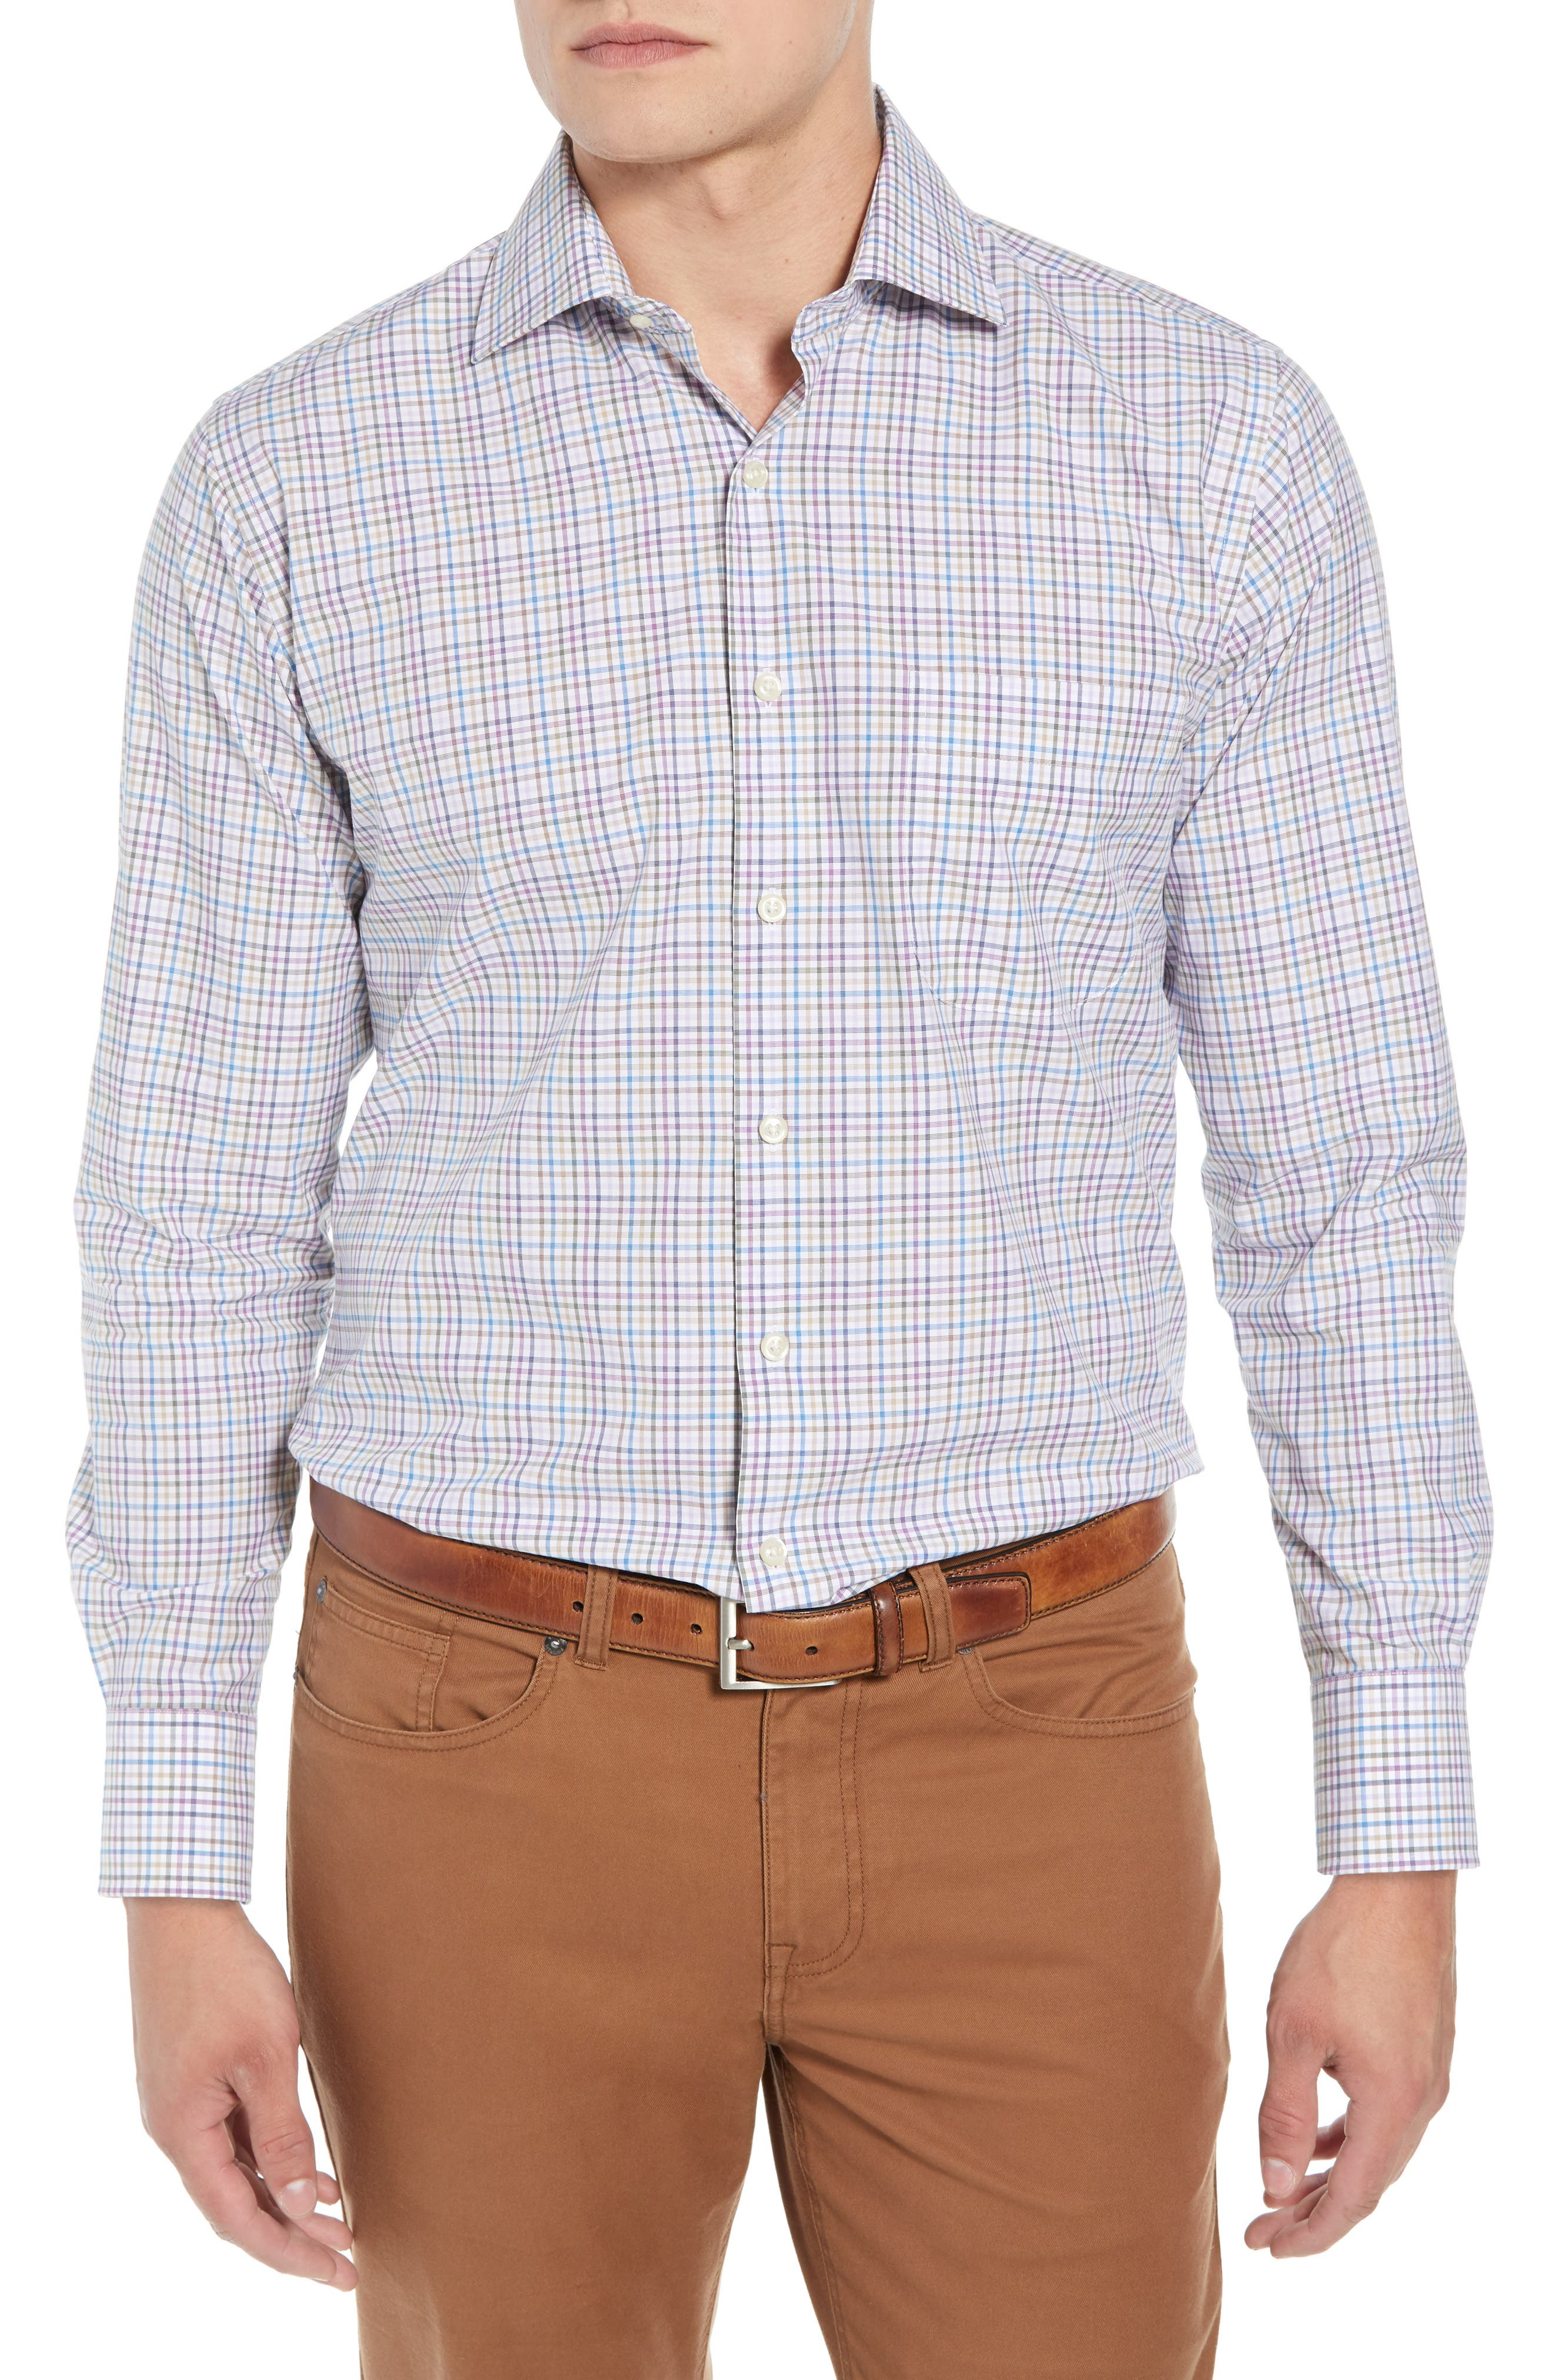 Whittier Heights Check Sport Shirt,                             Main thumbnail 1, color,                             BEET